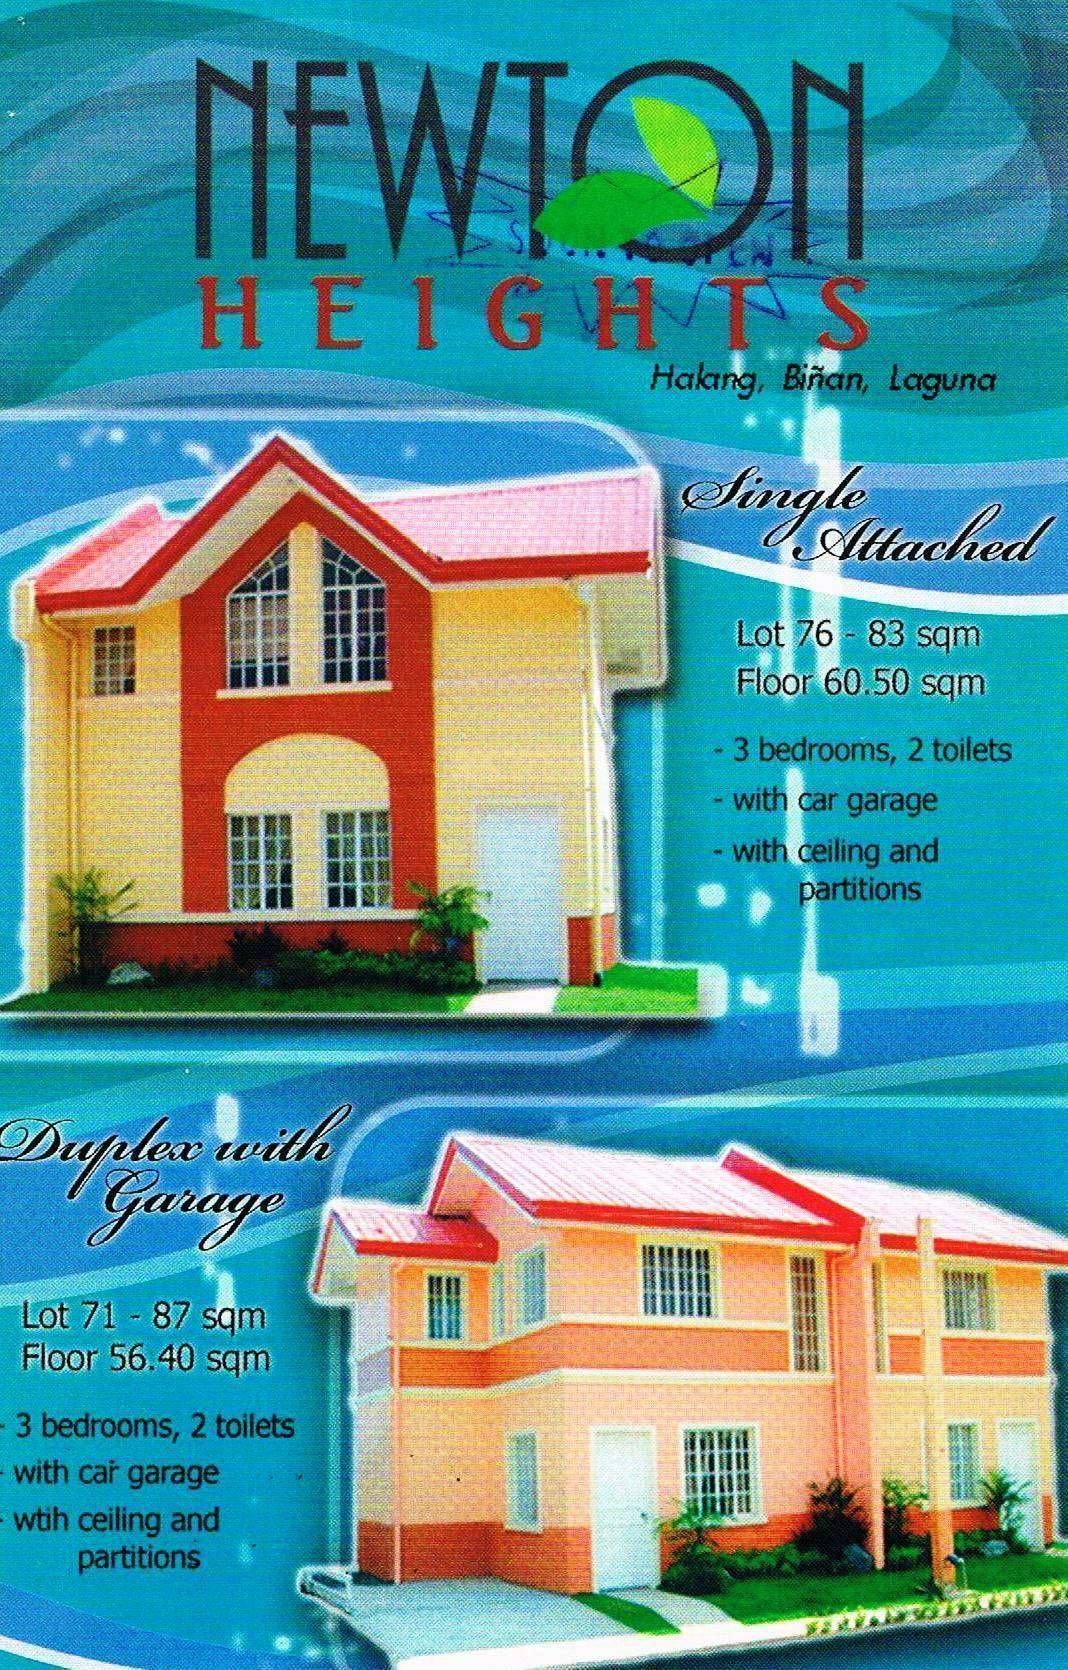 Newton Model House Binan Laguna Pls Contact Imie Pahamutang 09286749392 Md239306